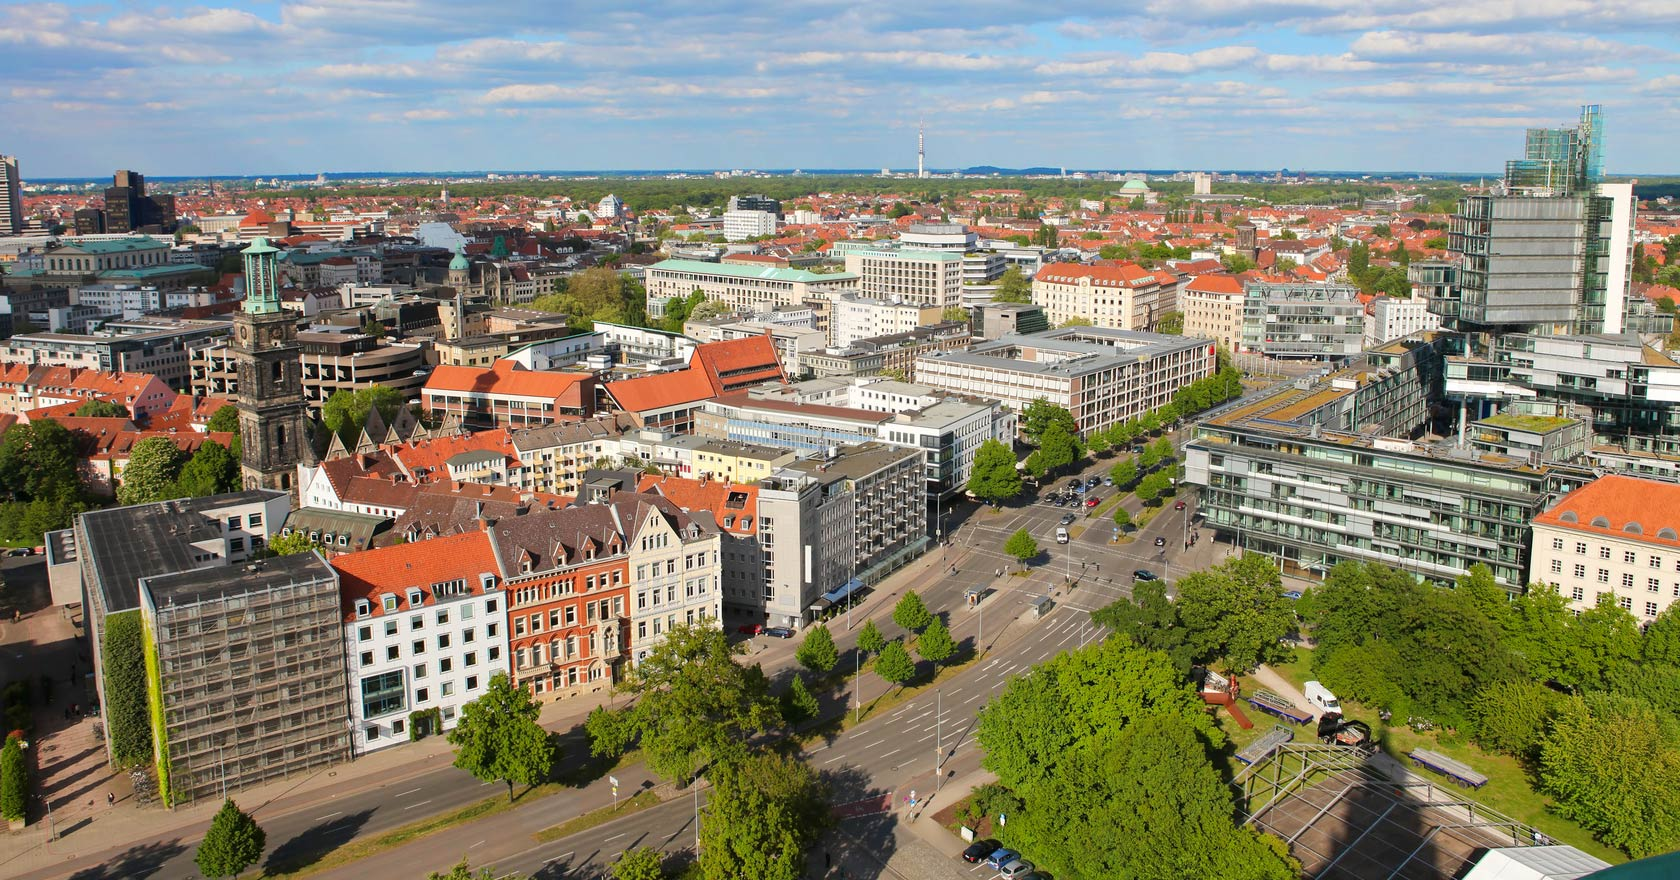 Möbelladen Hannover Furnished Flats Apartments Rooms Houses Homecompany Hannover